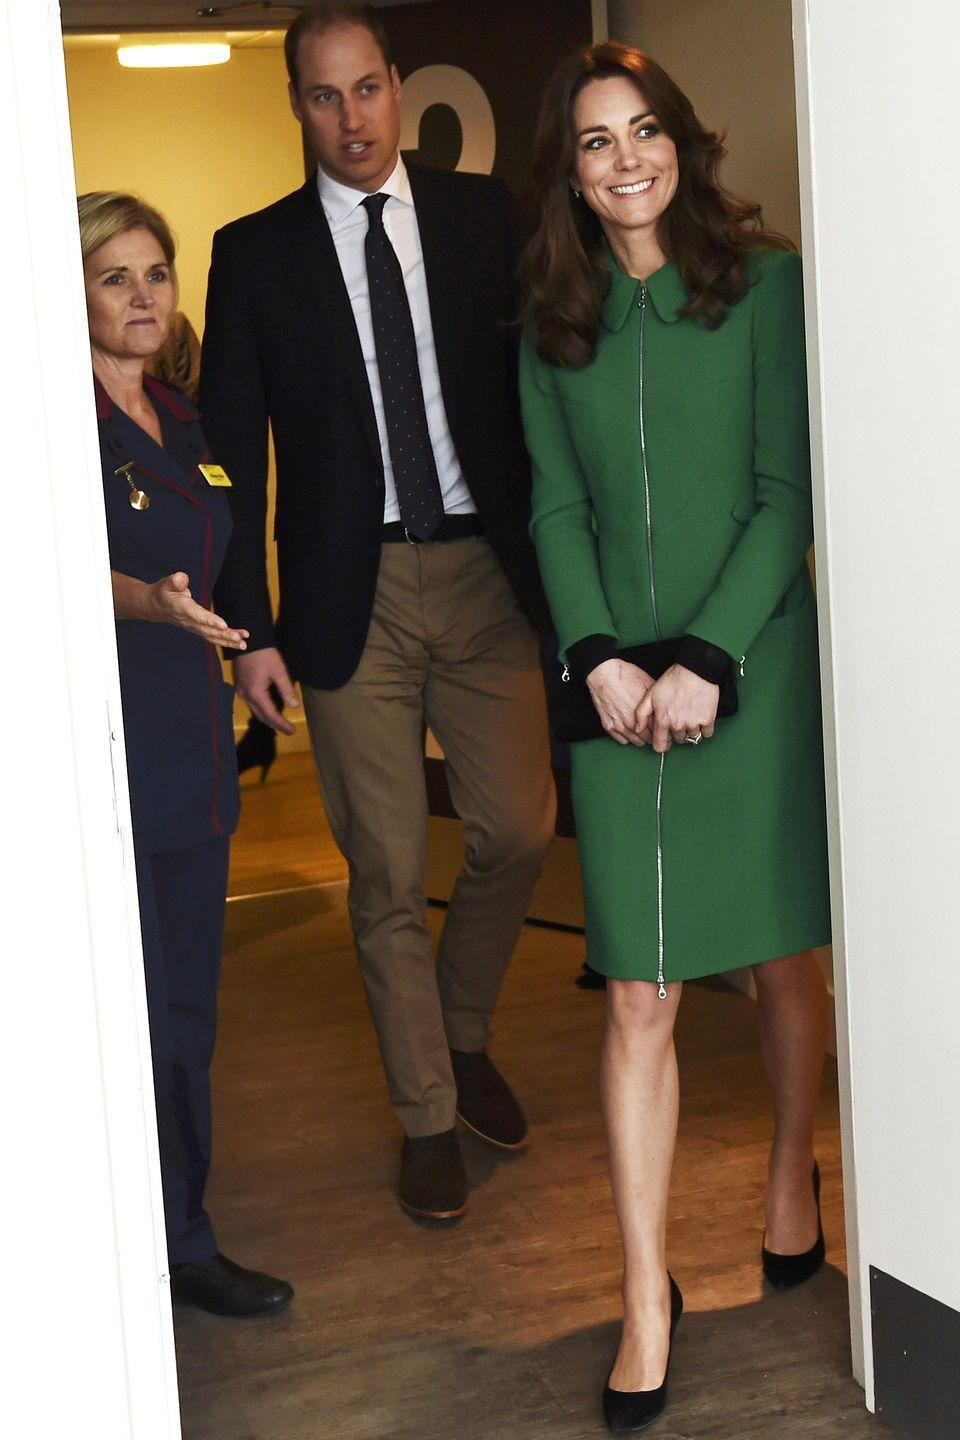 <p>Kate Middleton looked chic in a bright green coat and black pumps, while visiting St Thomas' Hospital in London to work towards preventing suicide with Prince William. </p>